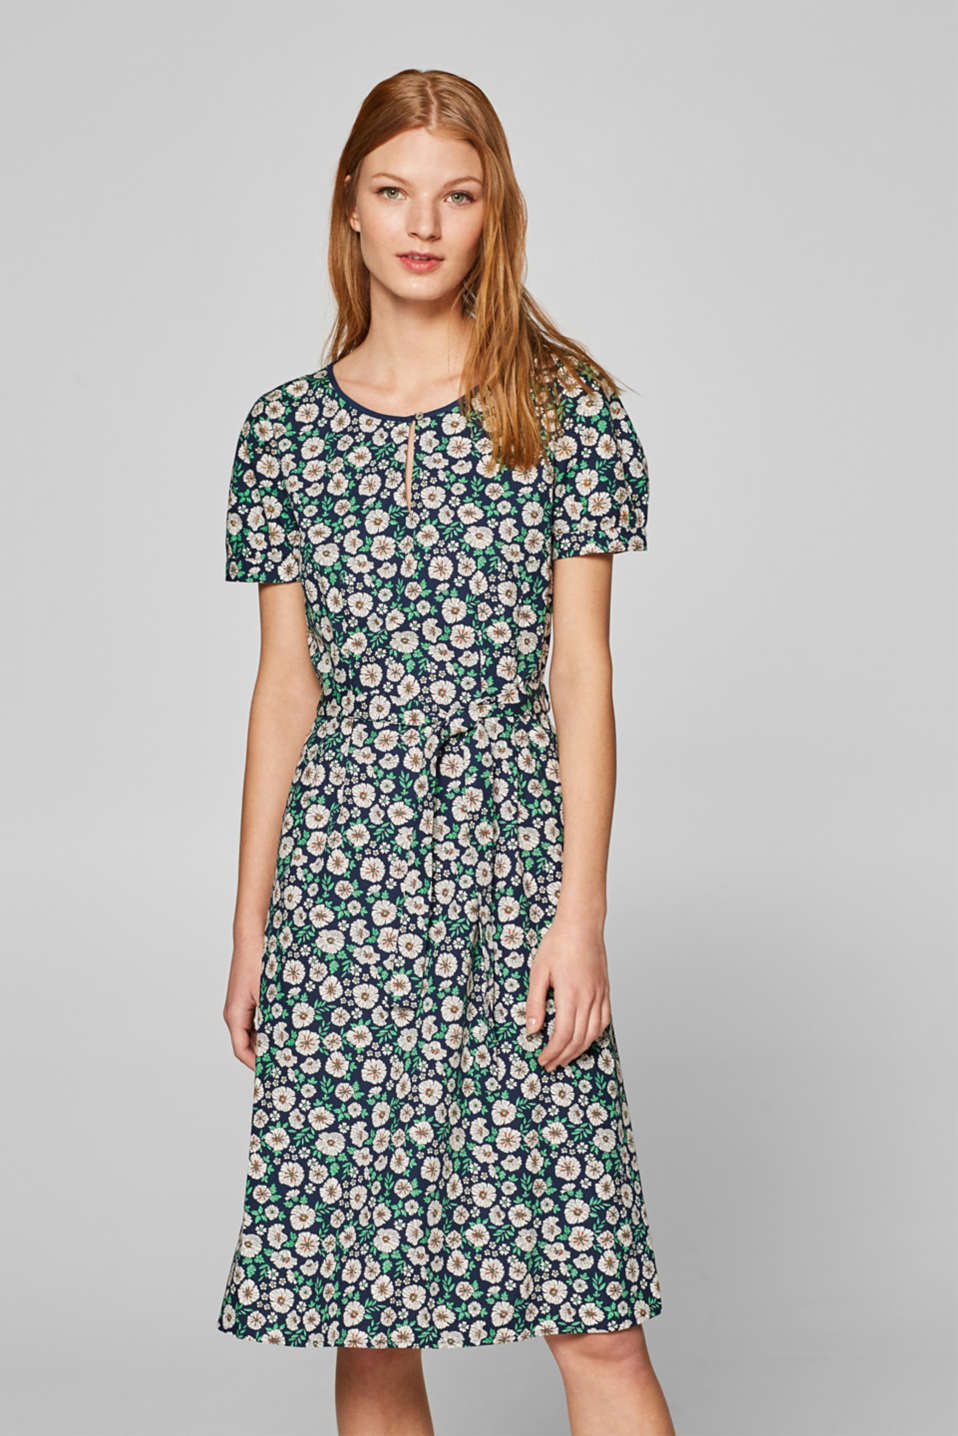 Esprit - Print dress with a tie belt, 100% cotton